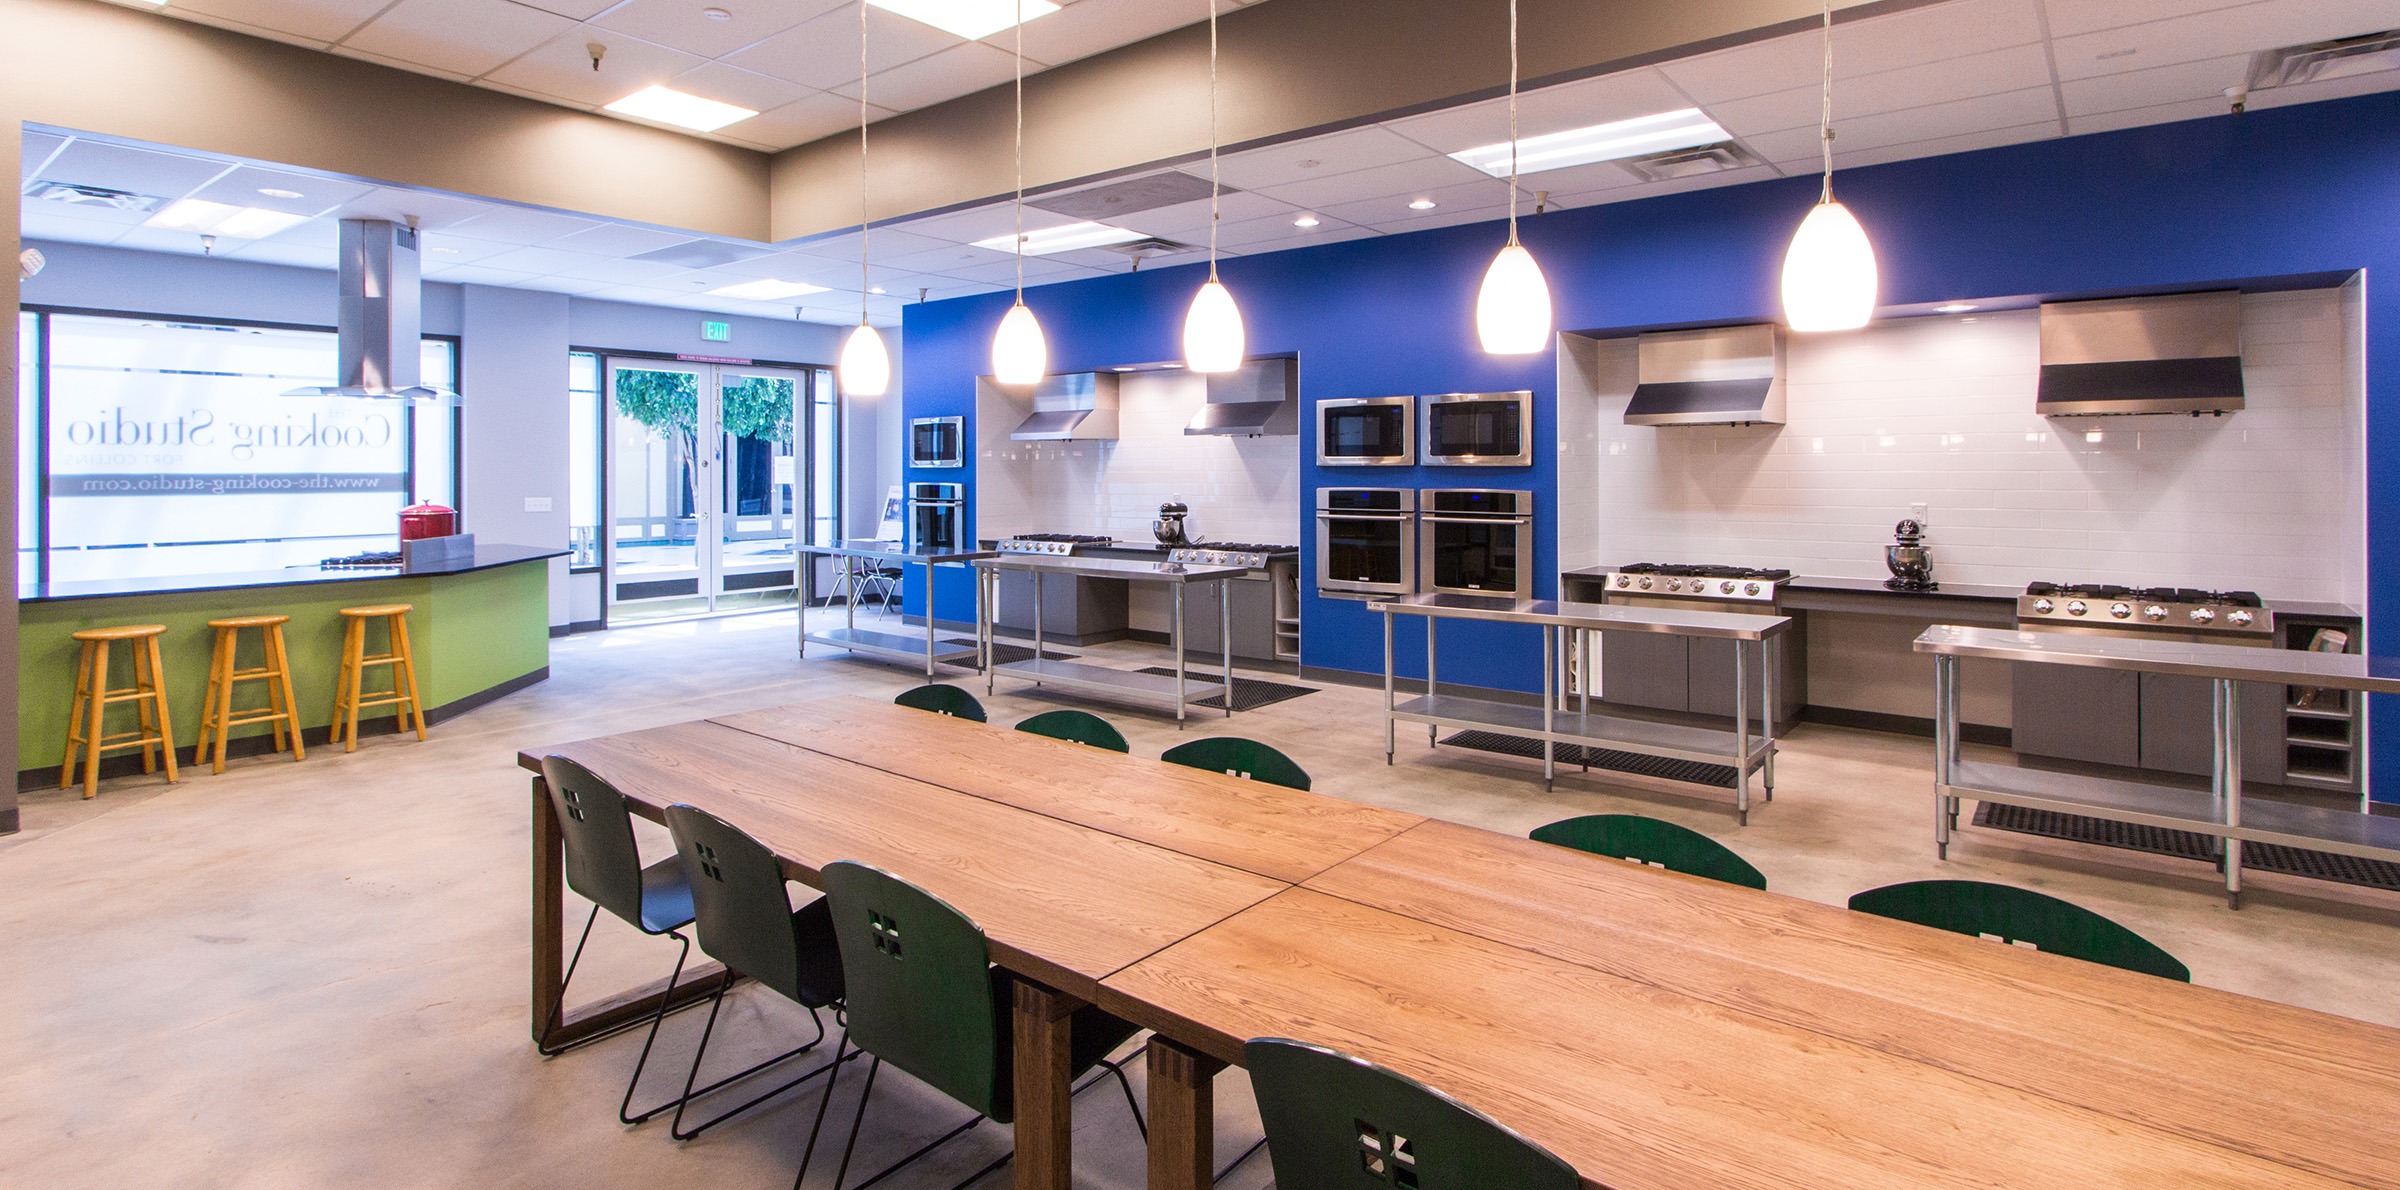 The Cooking Studio Fort Collins RBB Architects